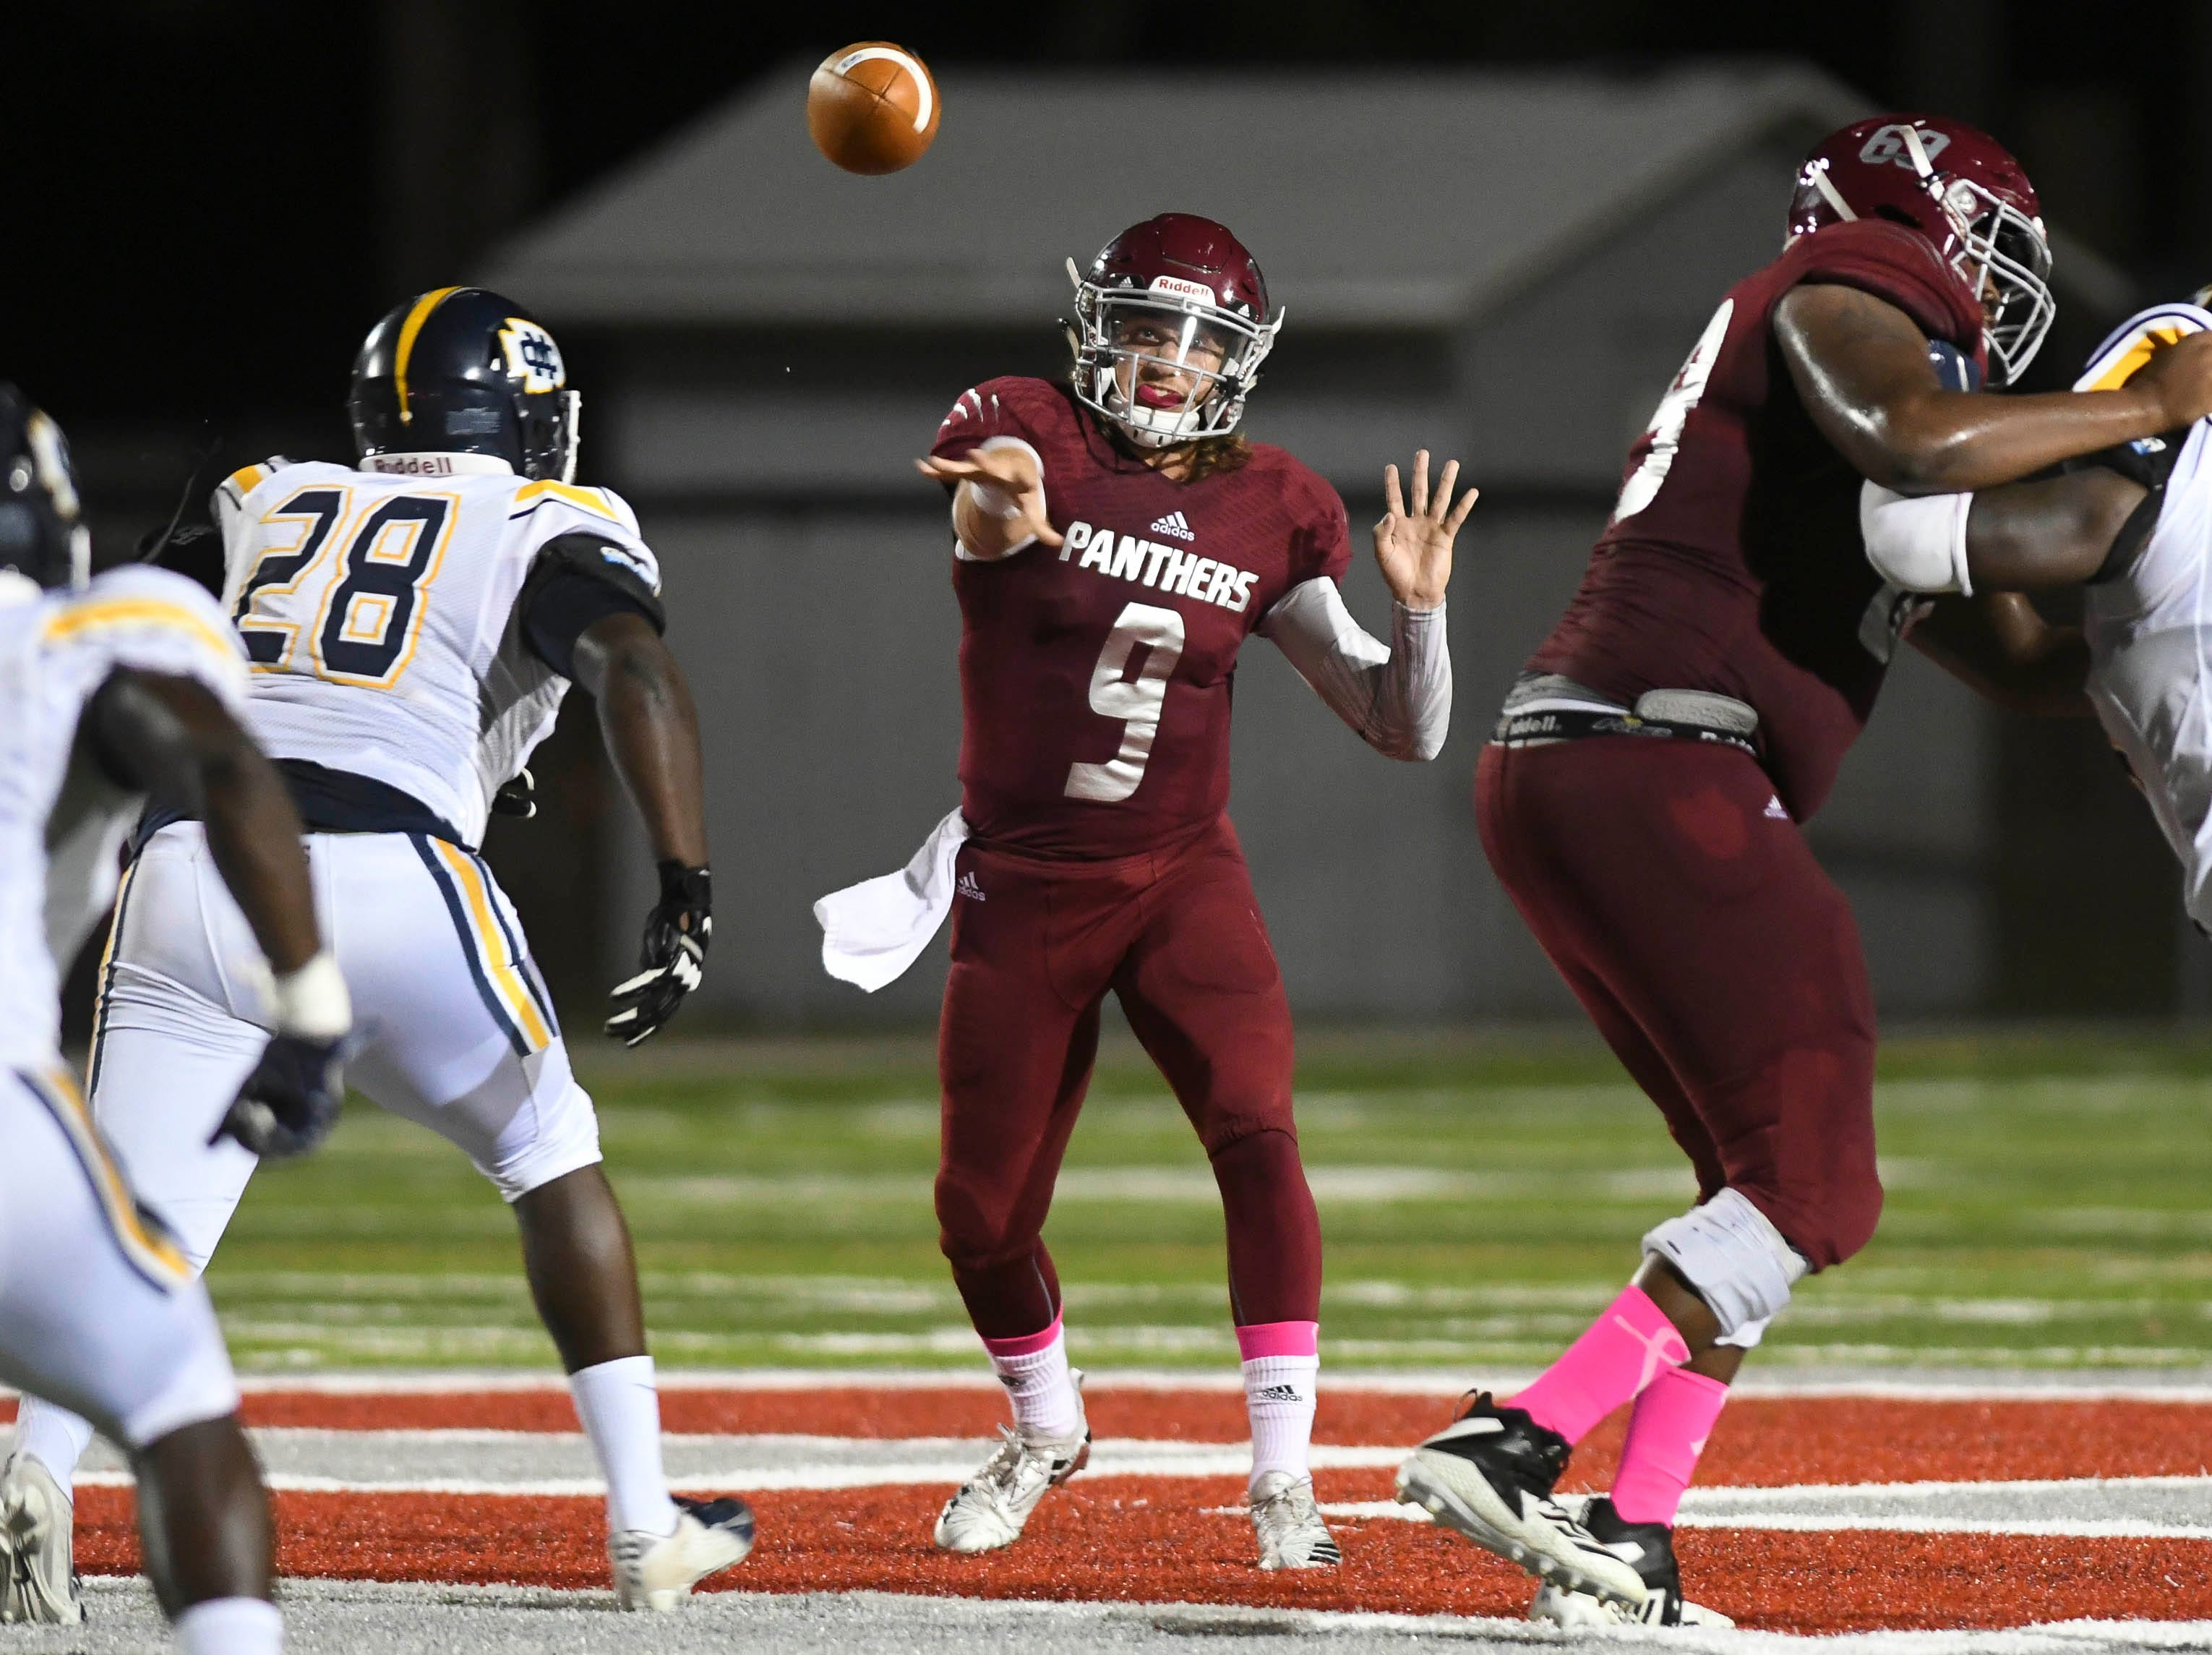 Trent Chmelik of Florida Tech passes the ball during Saturday's game at Panther Stadium